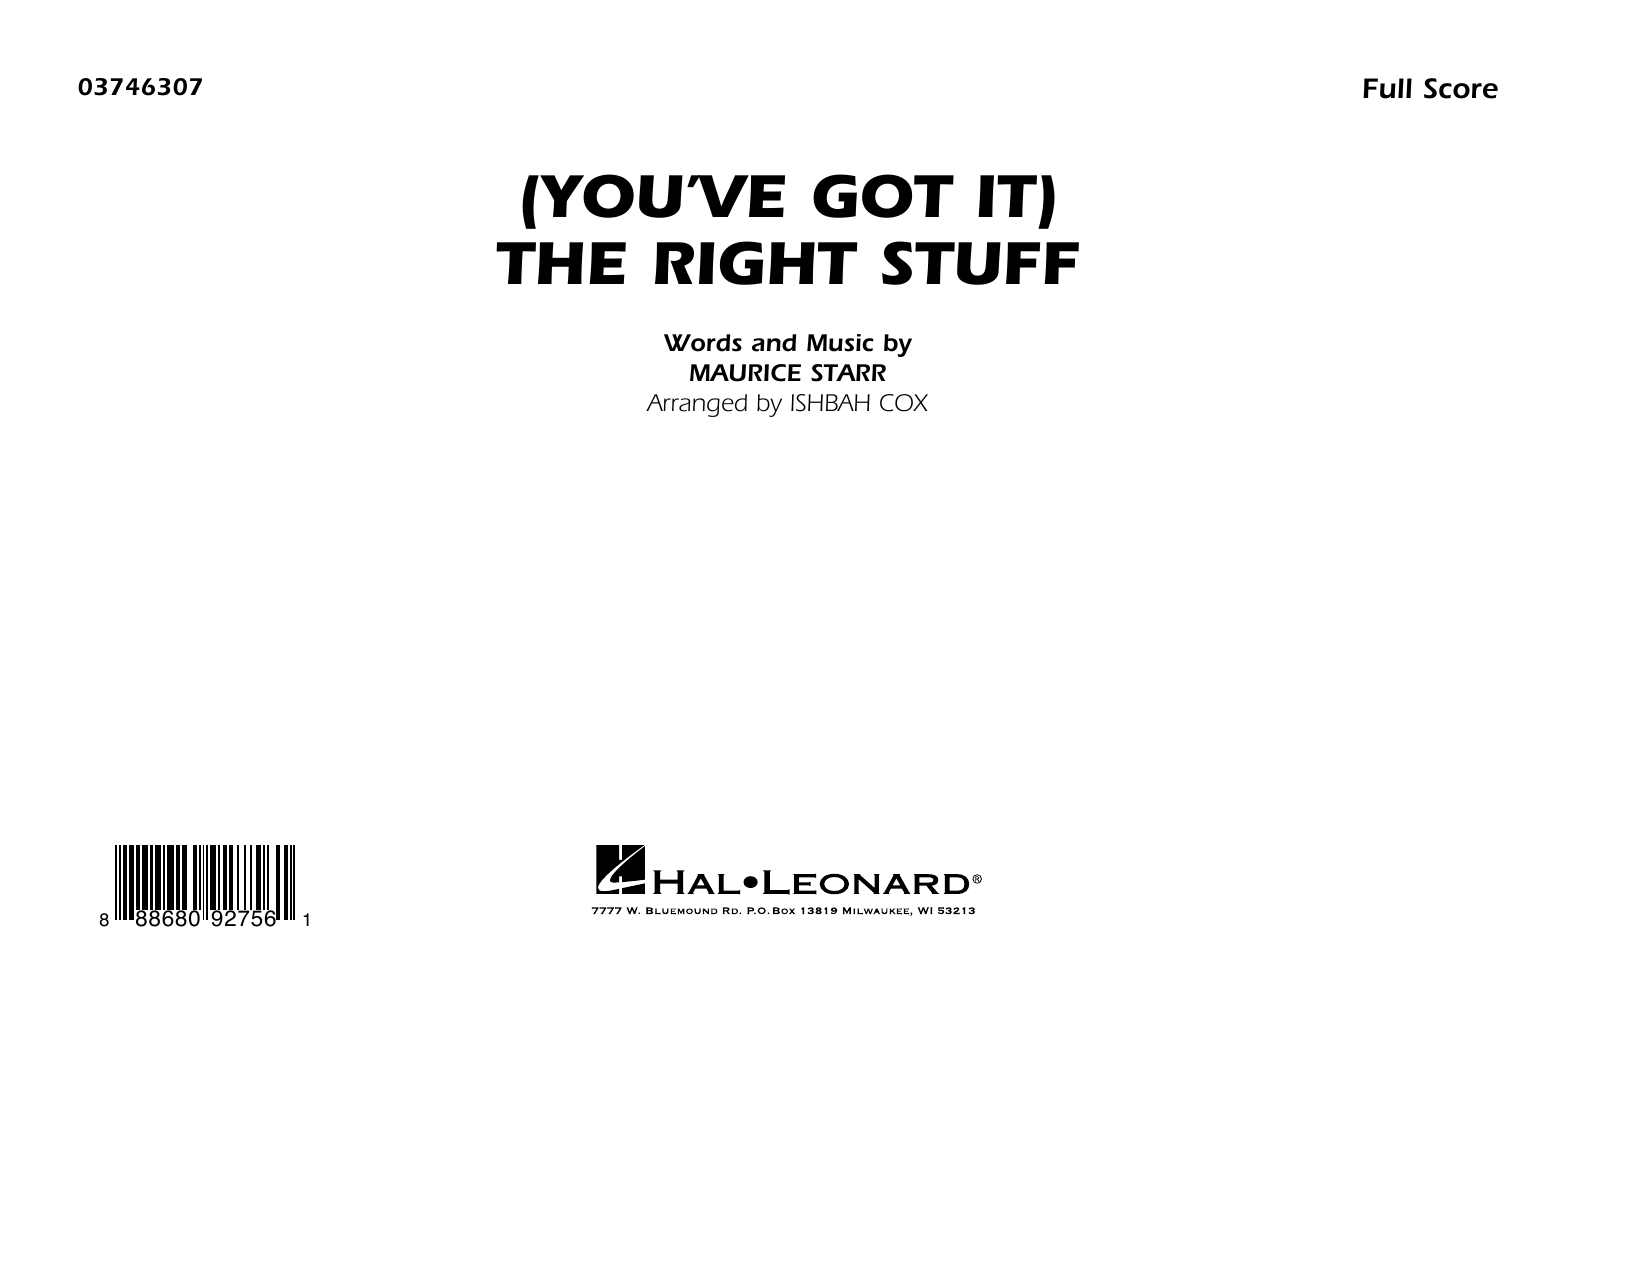 New Kids On The Block (You've Got It) The Right Stuff (arr. Ishbah Cox) - Conductor Score (Full Score) sheet music preview music notes and score for Marching Band including 7 page(s)